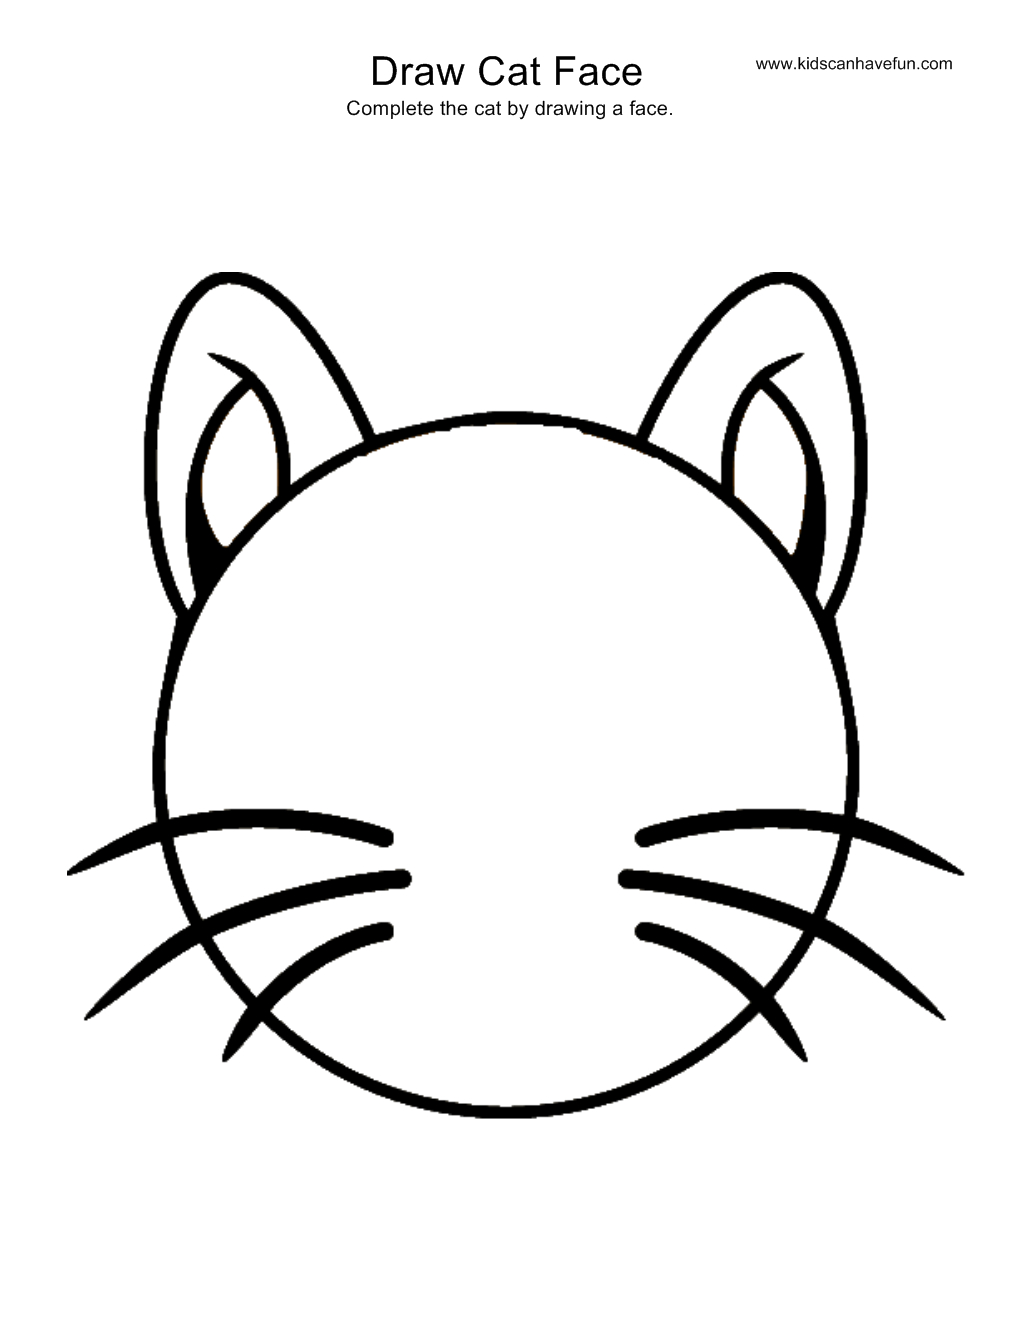 1019x1319 Outline Drawing Of A Cat Draw Cat Face Activity, More Drawing